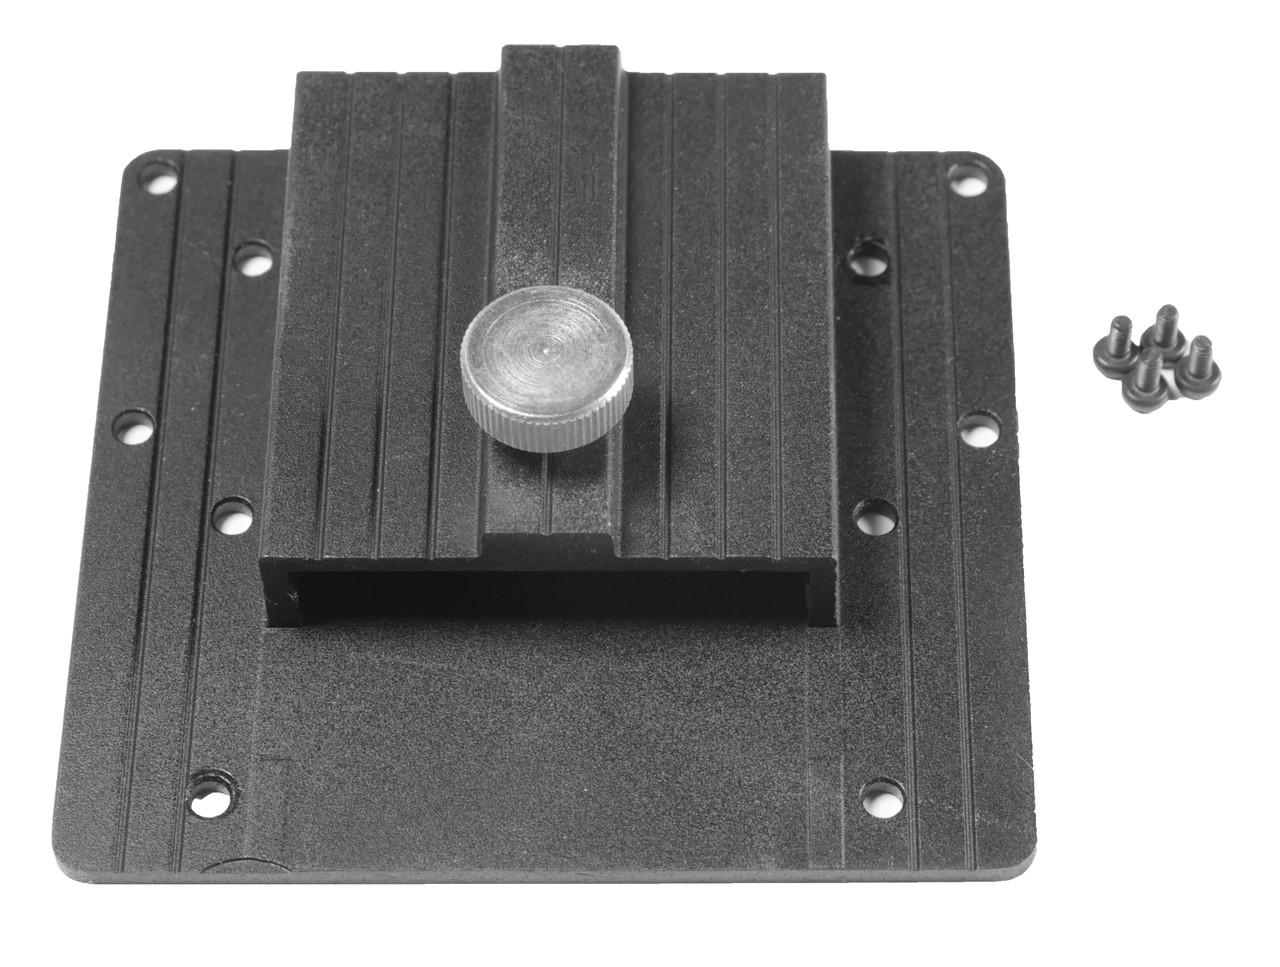 Modified VESA Plate - International